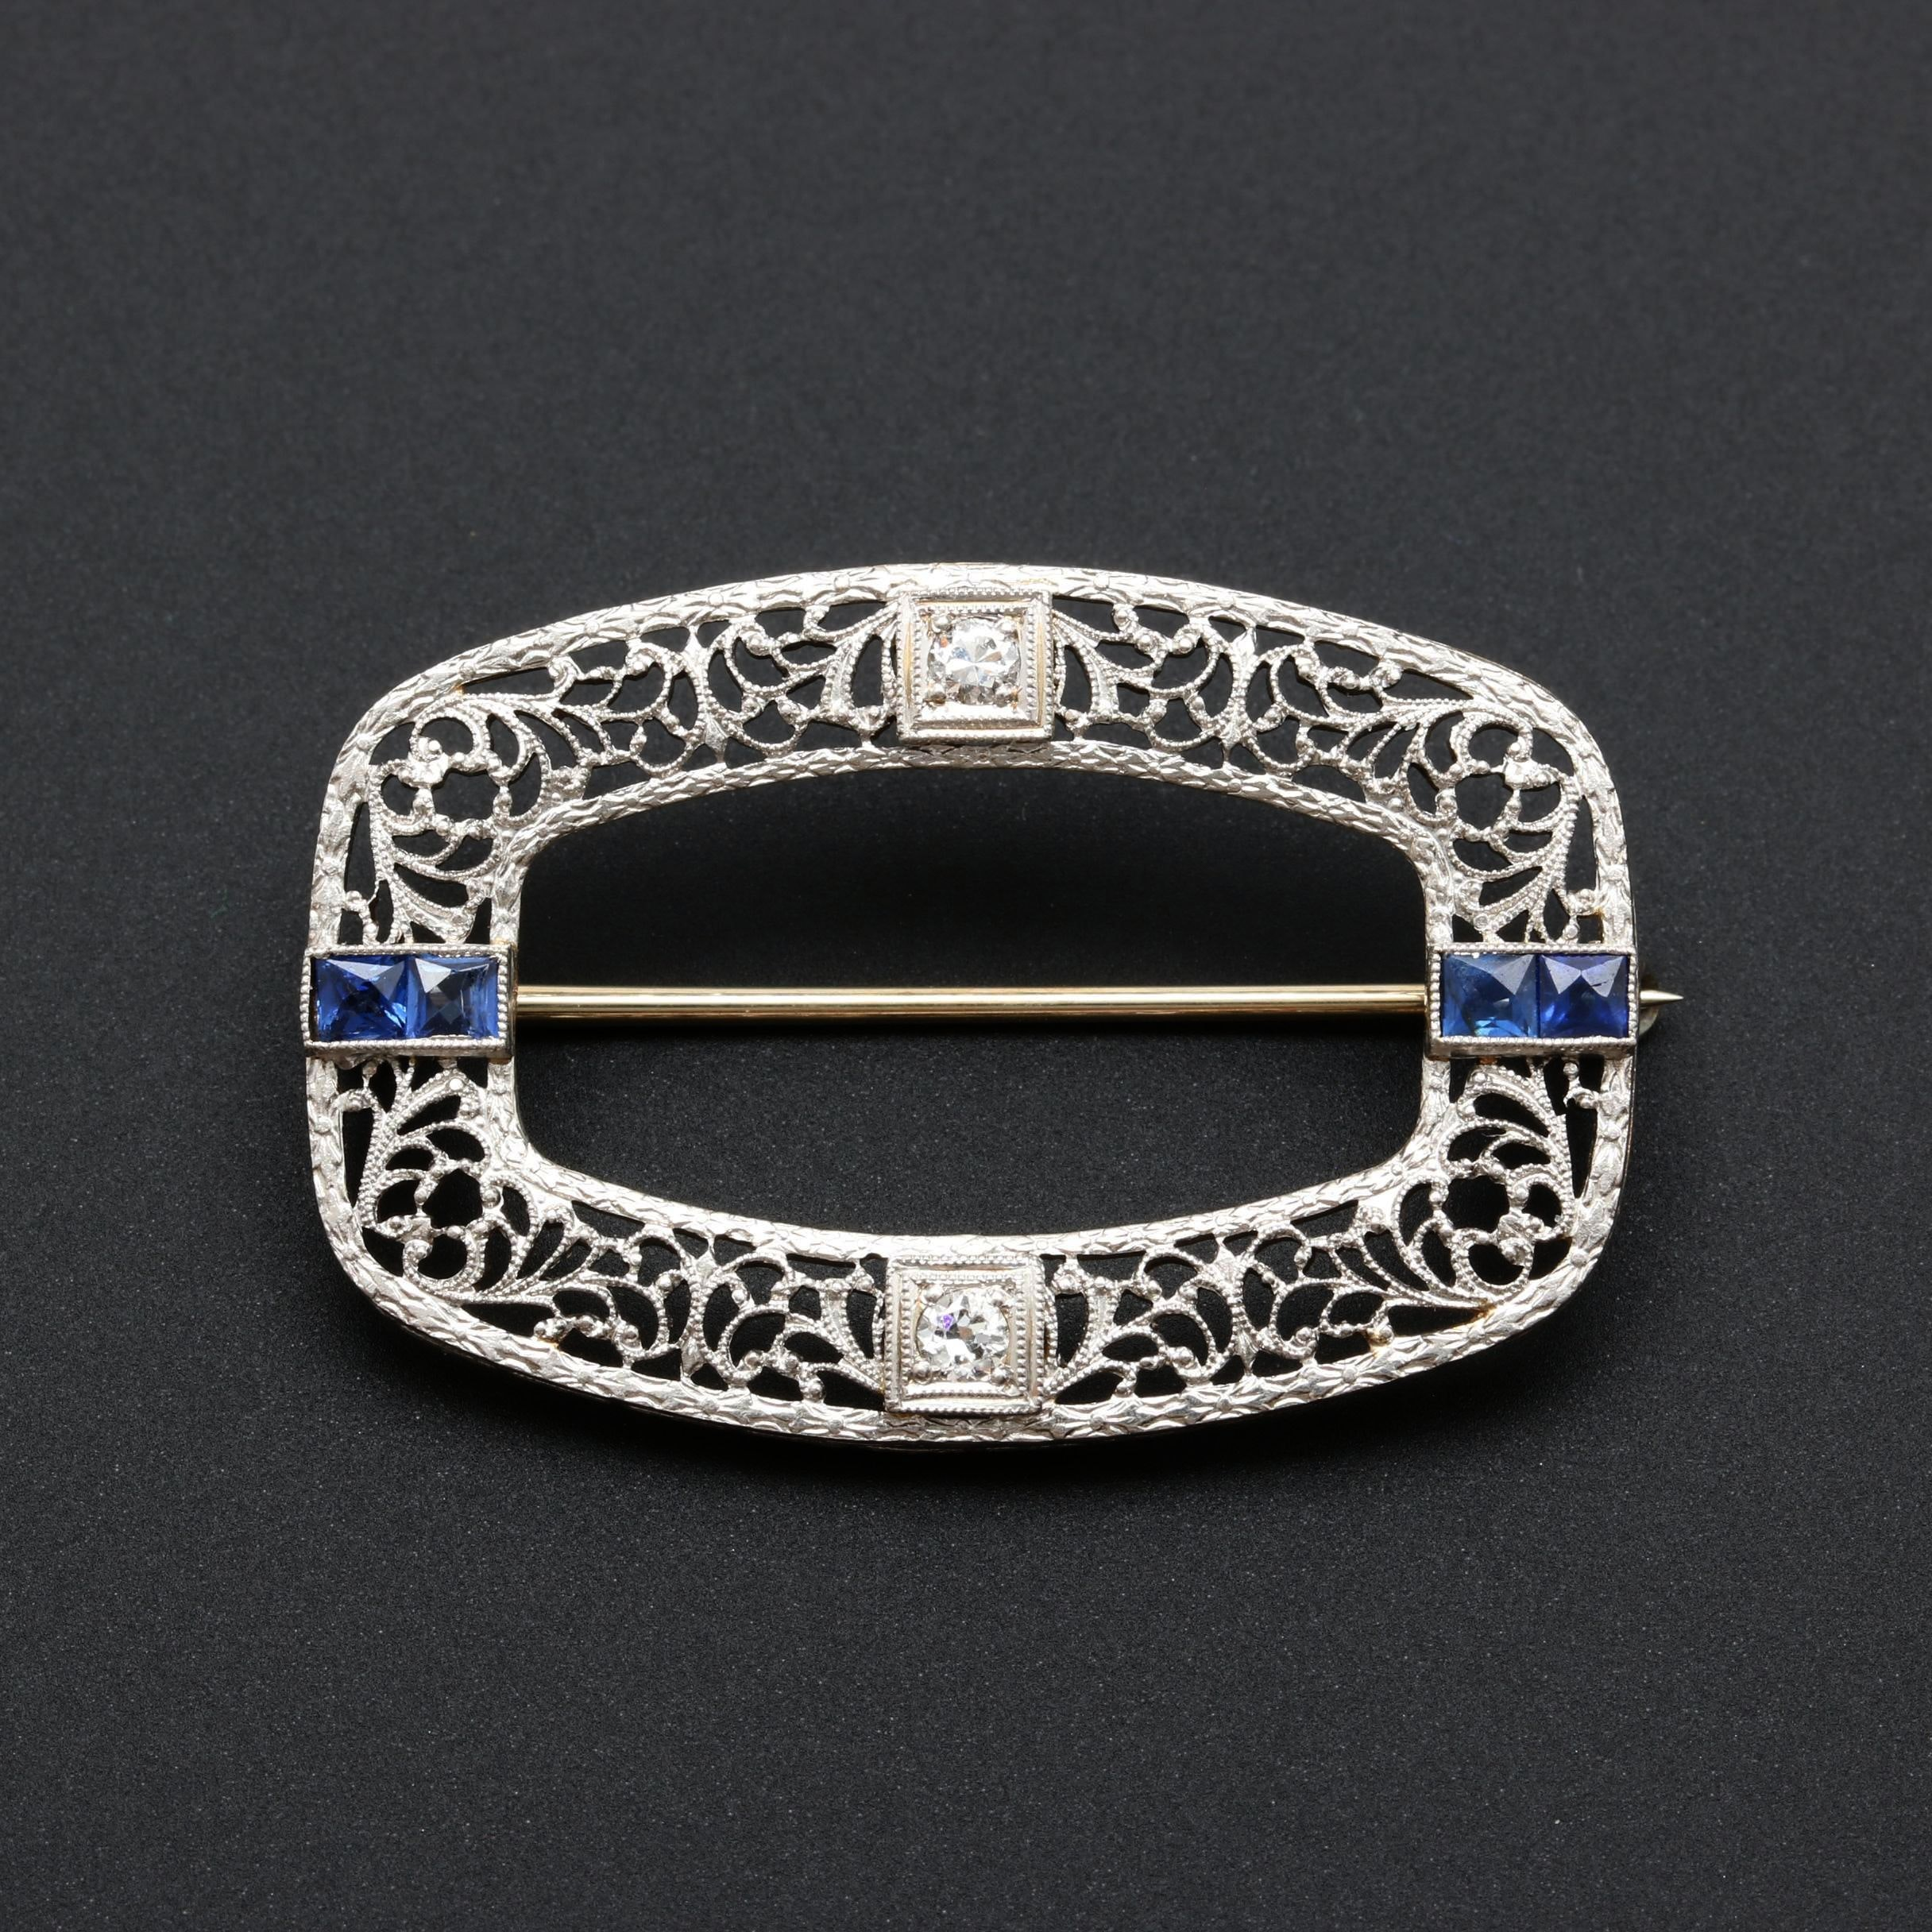 Edwardian Platinum and 14K White Gold Diamond and Blue Sapphire Brooch